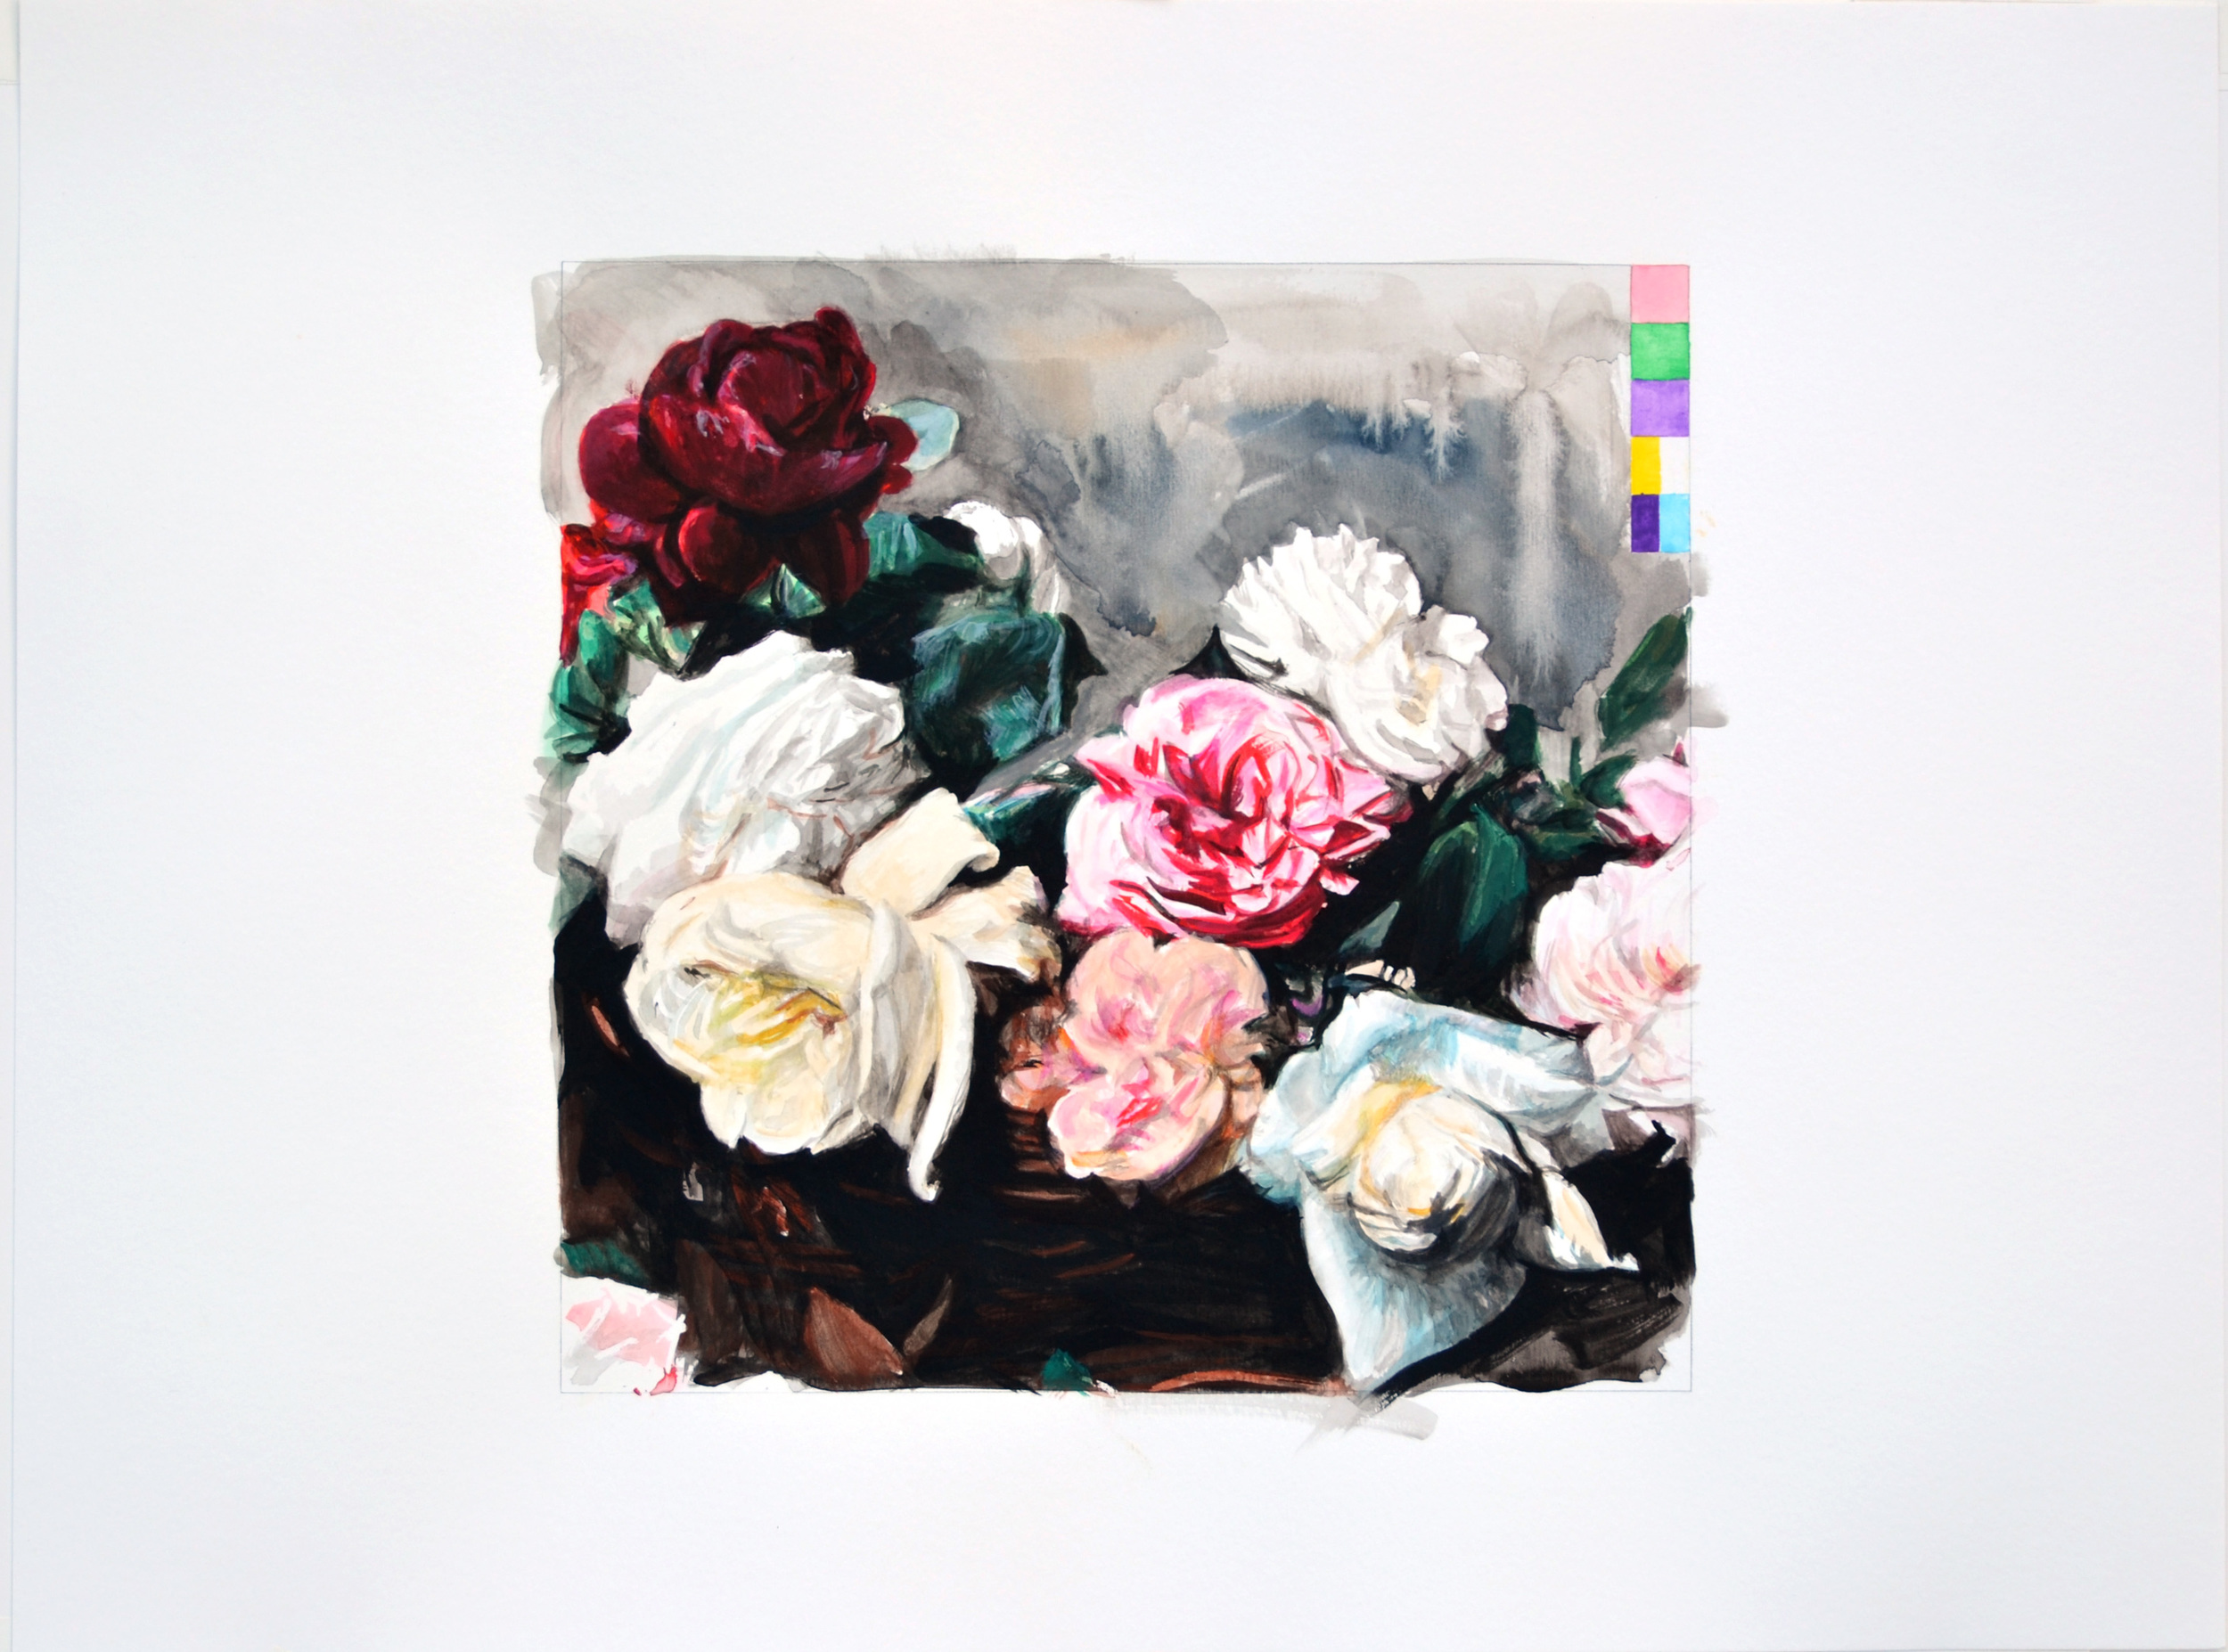 Power Corruption and Lies #30